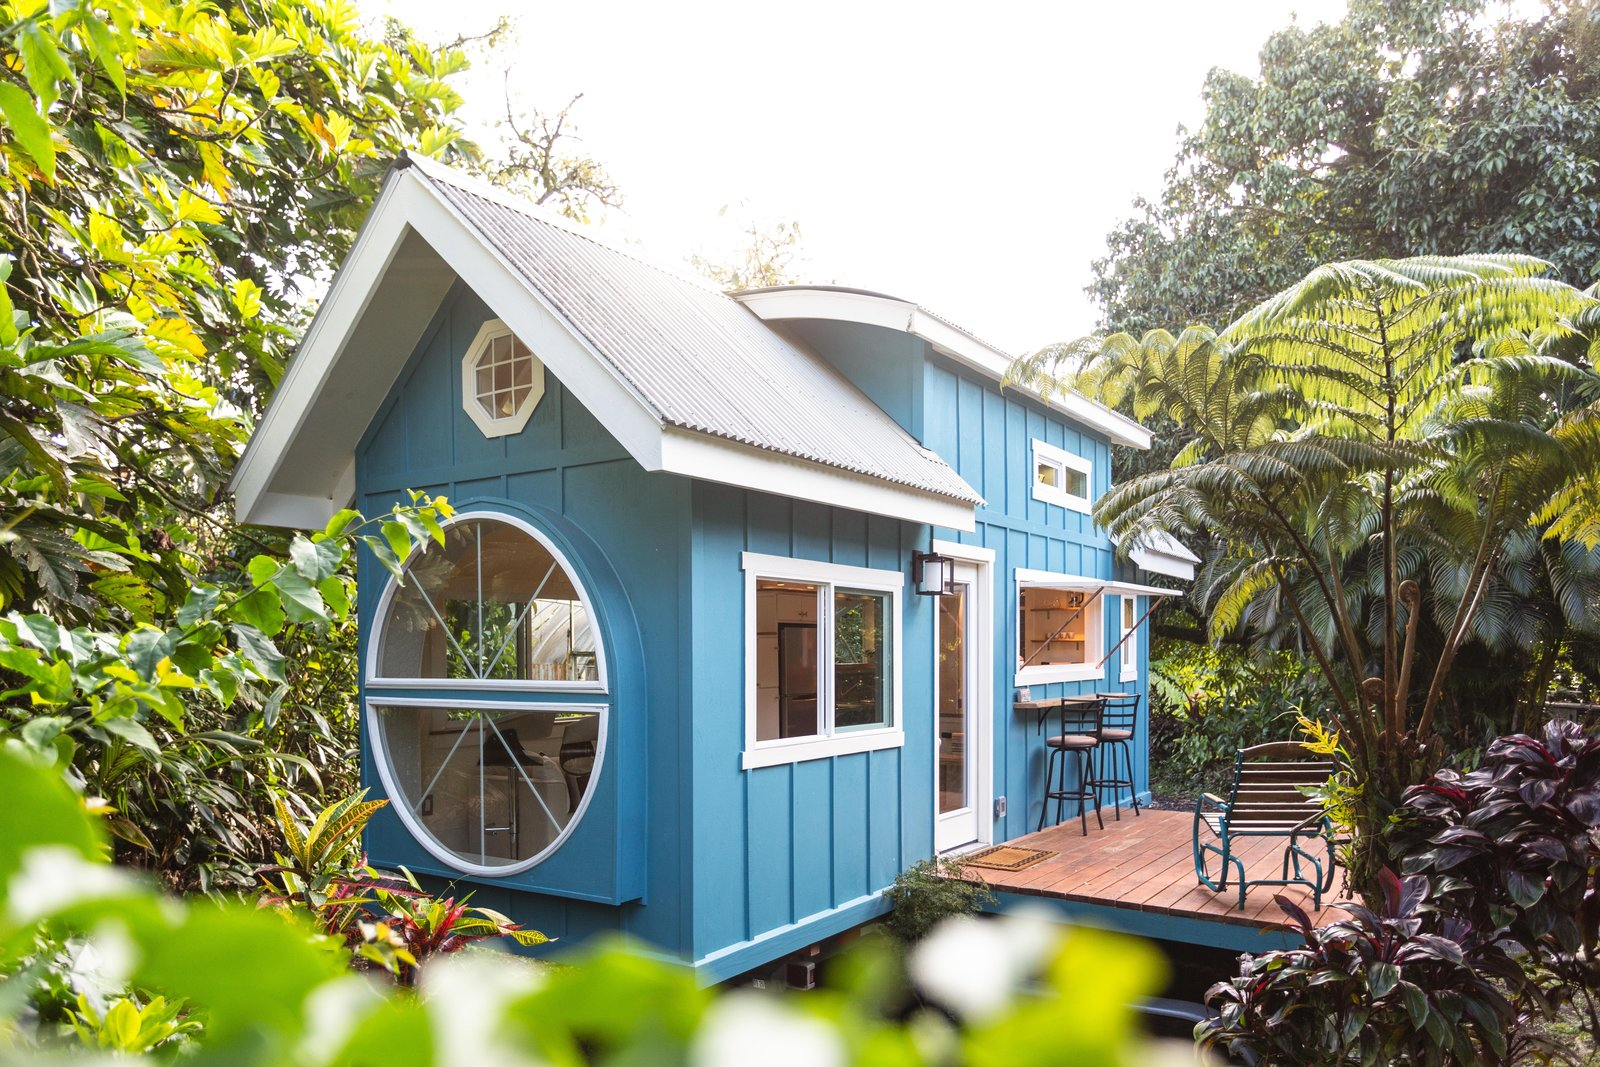 Blue plywood-clad Oasis Tiny House by Paradise Tiny Homes